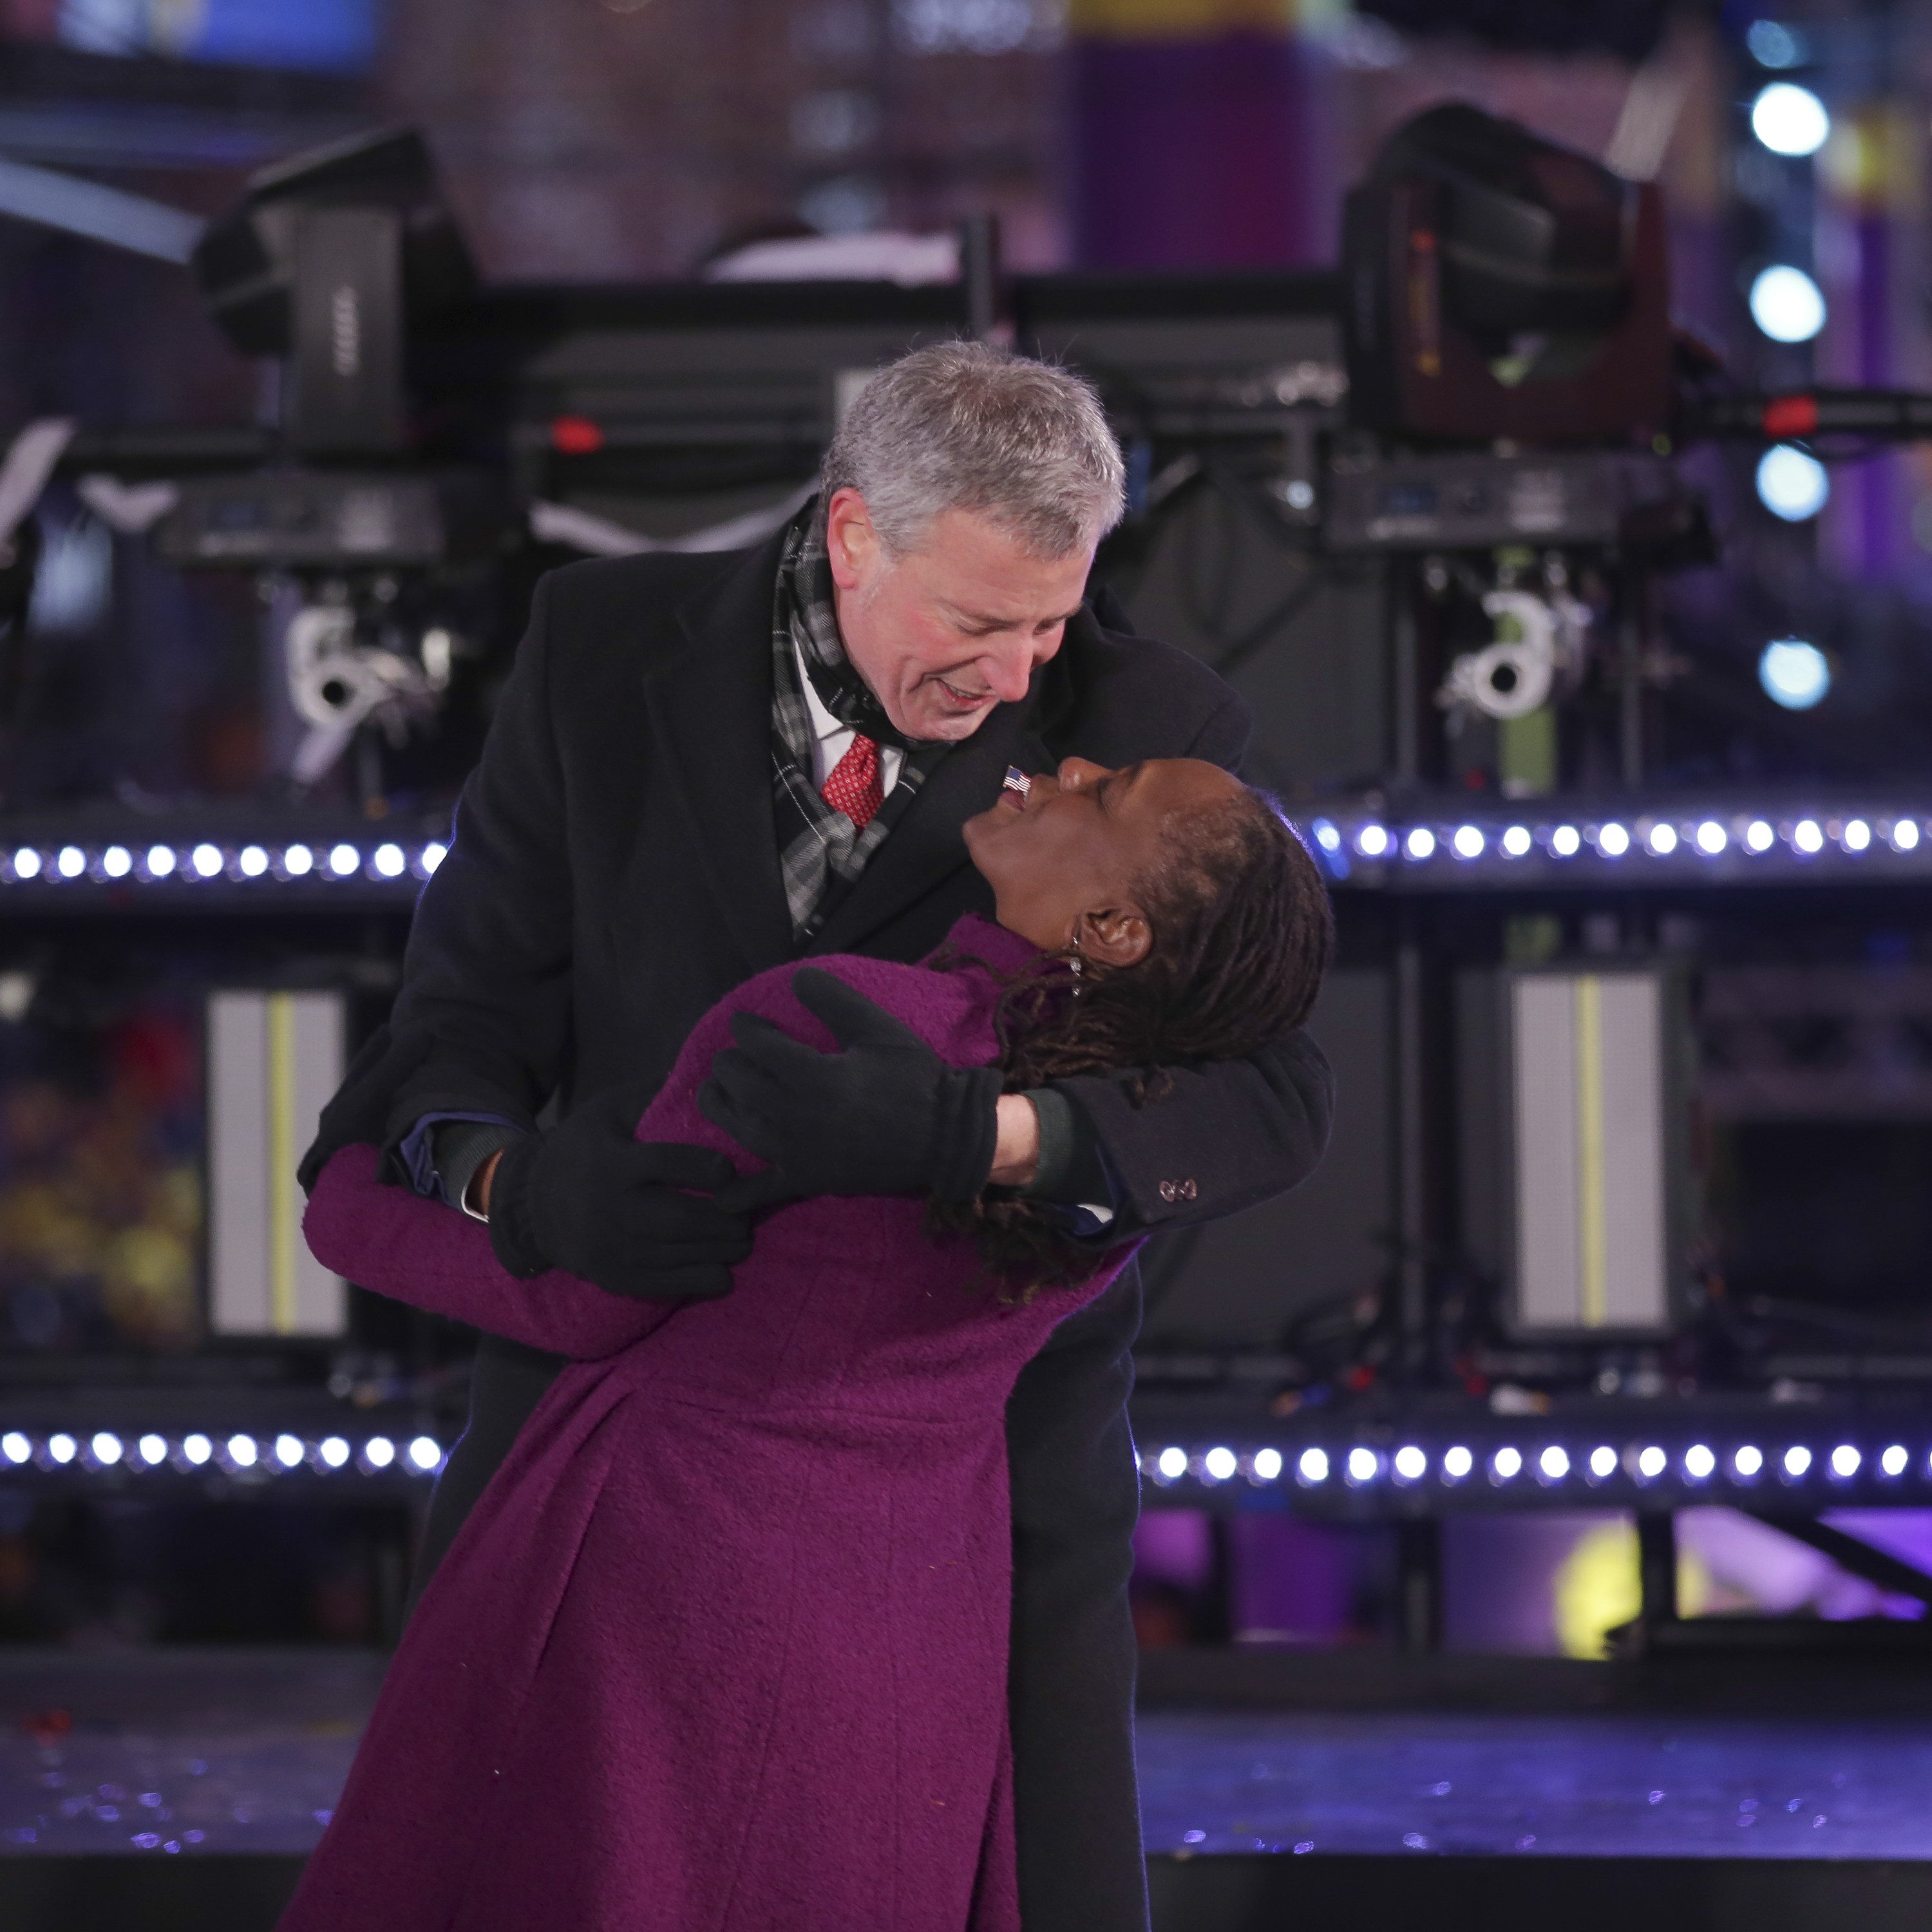 <div class='meta'><div class='origin-logo' data-origin='AP'></div><span class='caption-text' data-credit='Brent N. Clarke/Invision/AP'>New York City Mayor Bill de Blasio, left, and Chirlane McCray dance on stage at the New Year's Eve celebration in Times Square on Sunday, Dec. 31, 2017, in New York.</span></div>